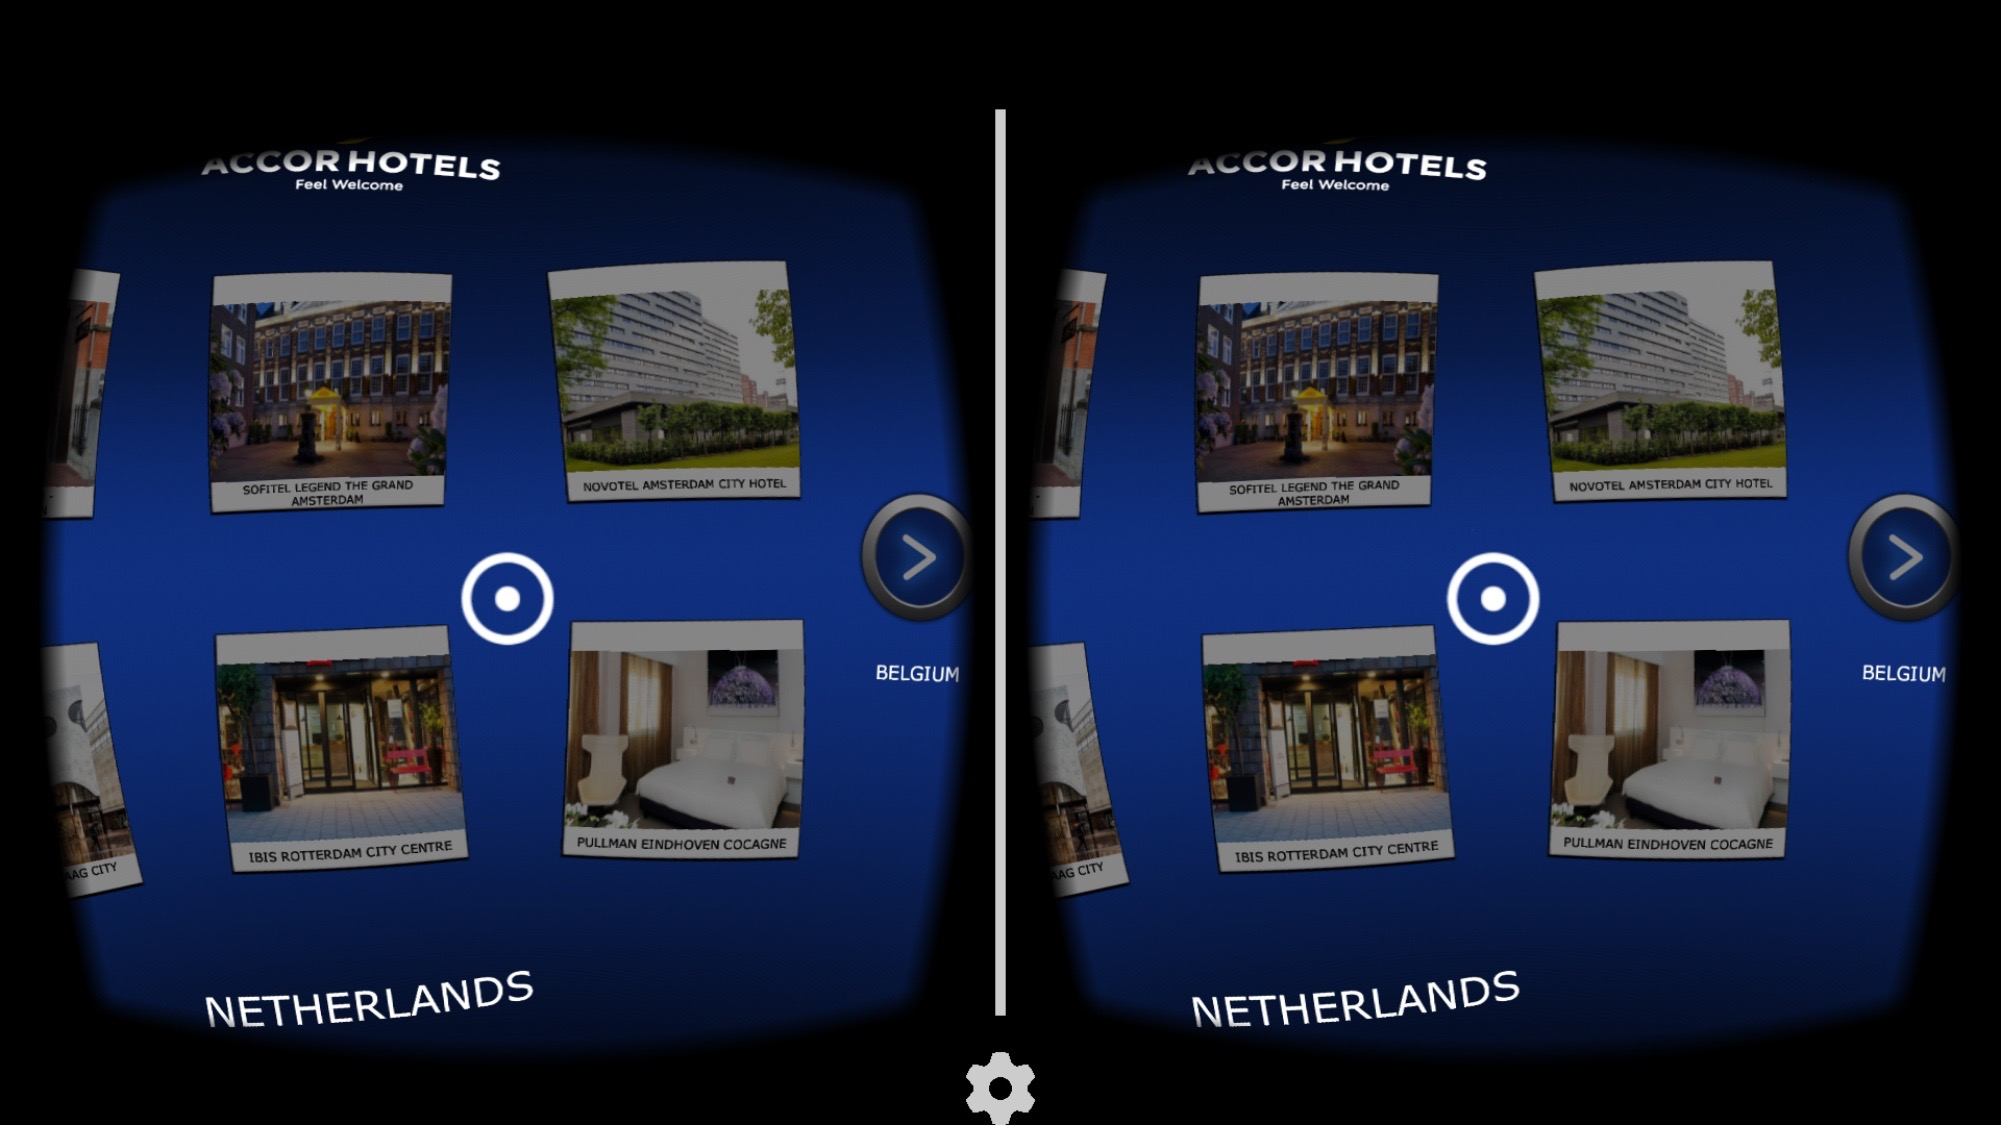 AccorHotels Google Cardboard